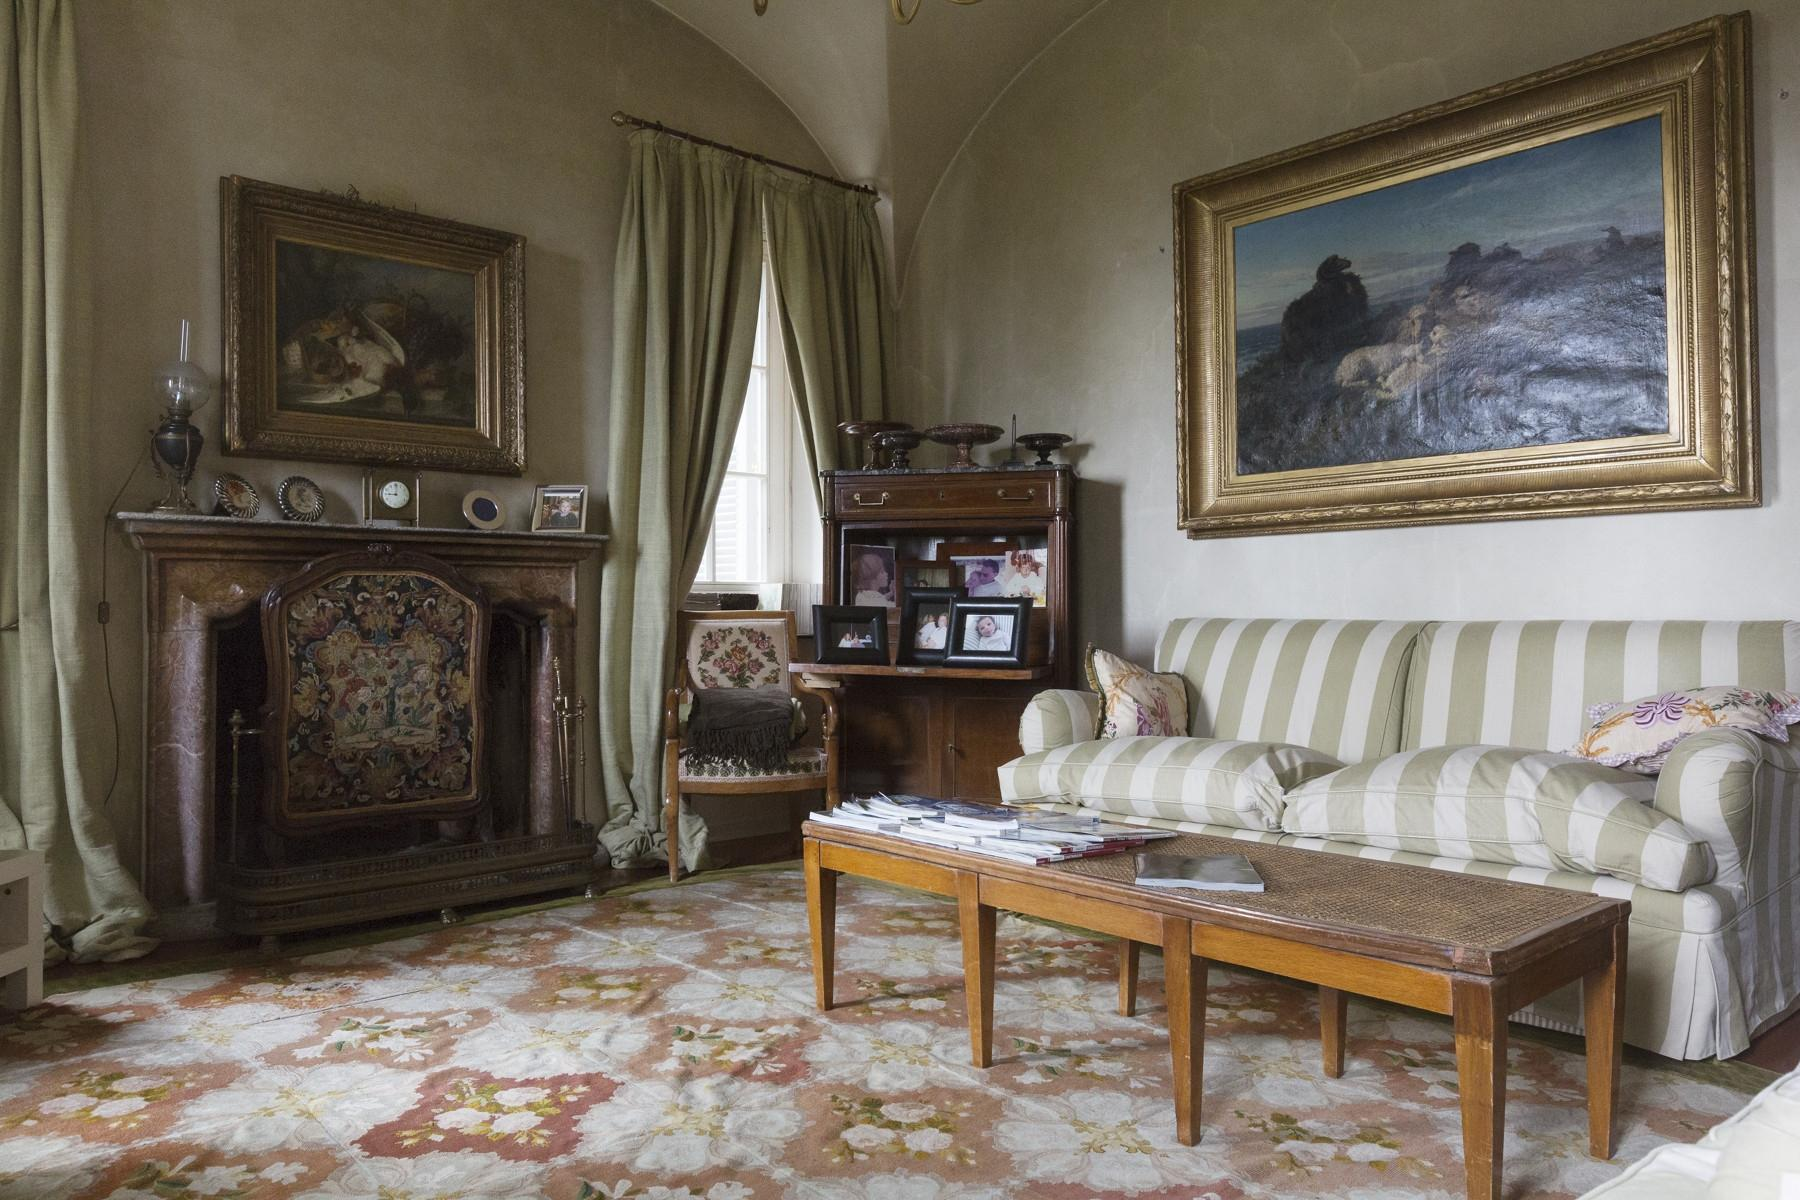 Historical Villa in the countryside of Biella - 10